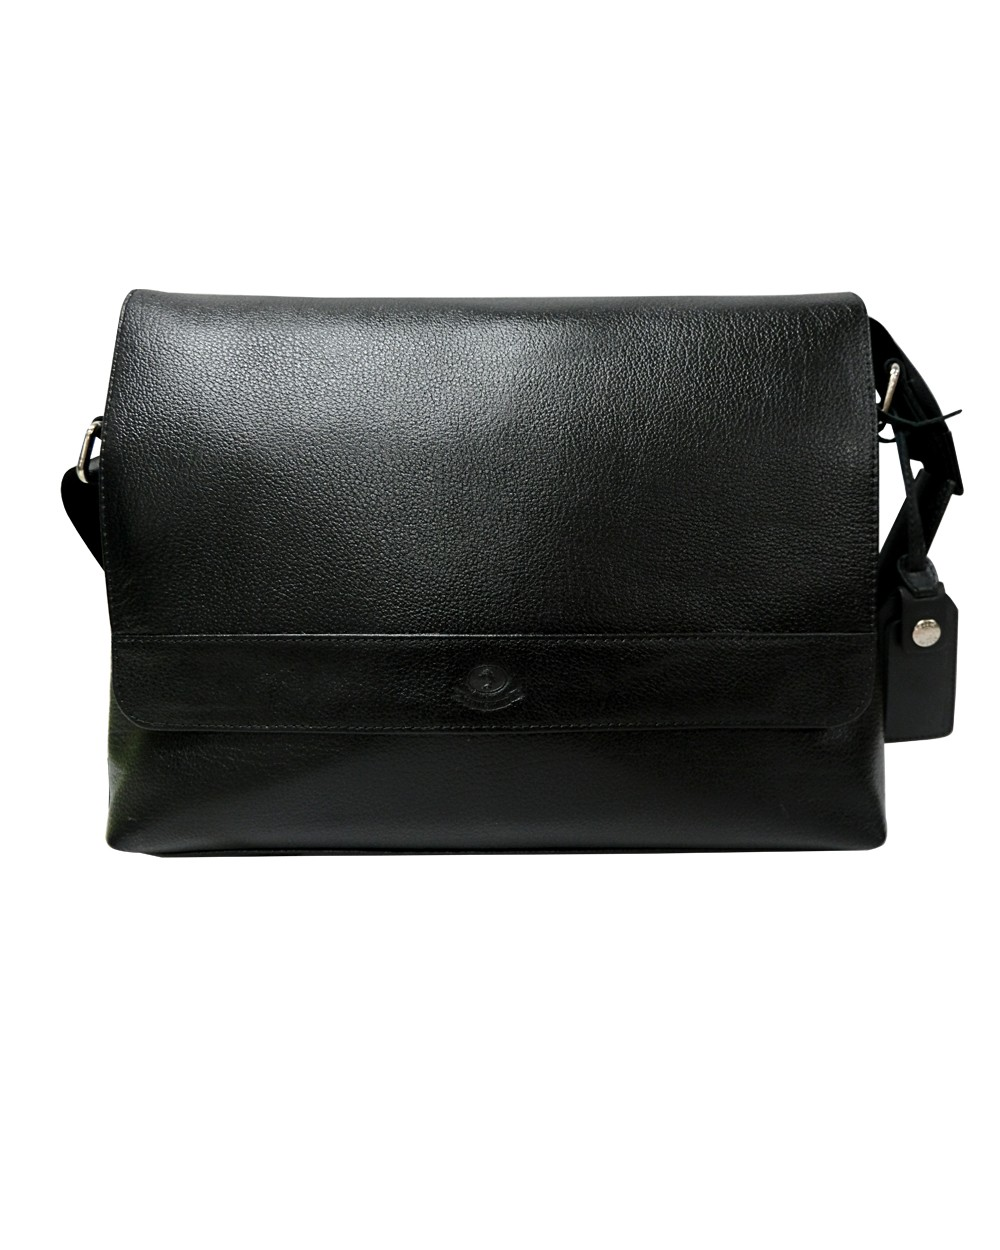 Cobe-Messenger Leather Bag (Big)